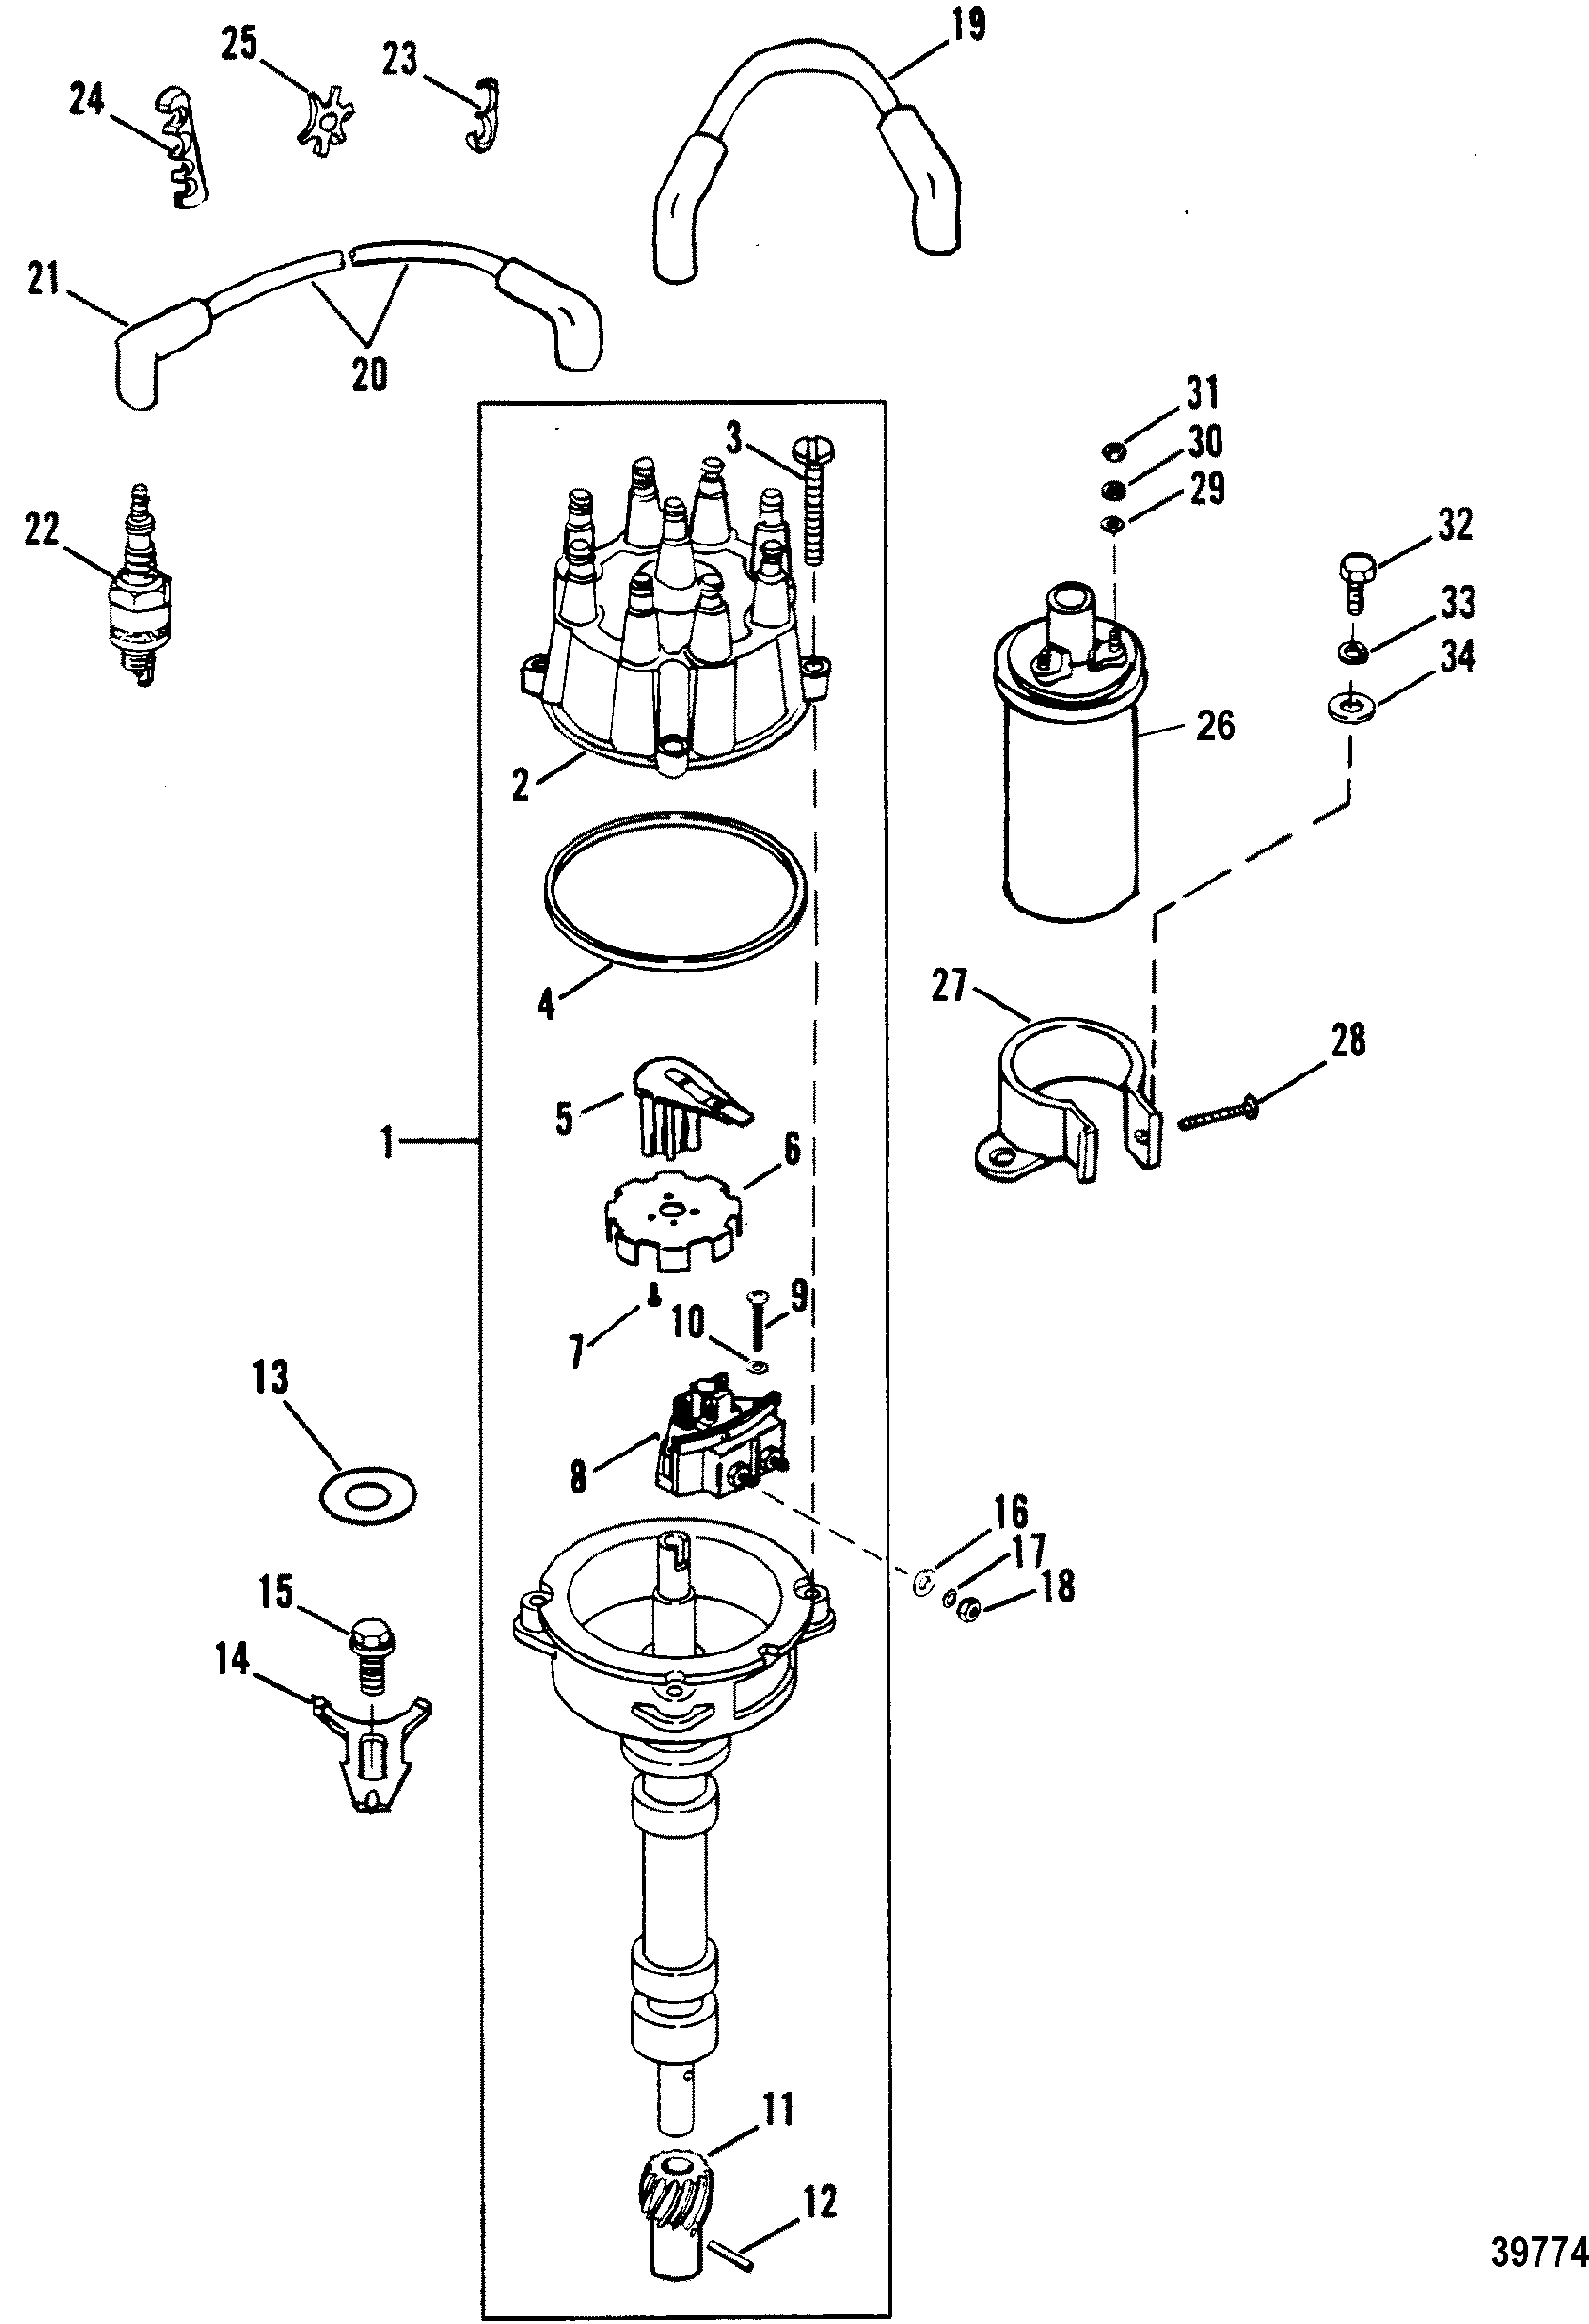 DISTRIBUTOR AND IGNITION COMPONENTS FOR MERCRUISER / MIE